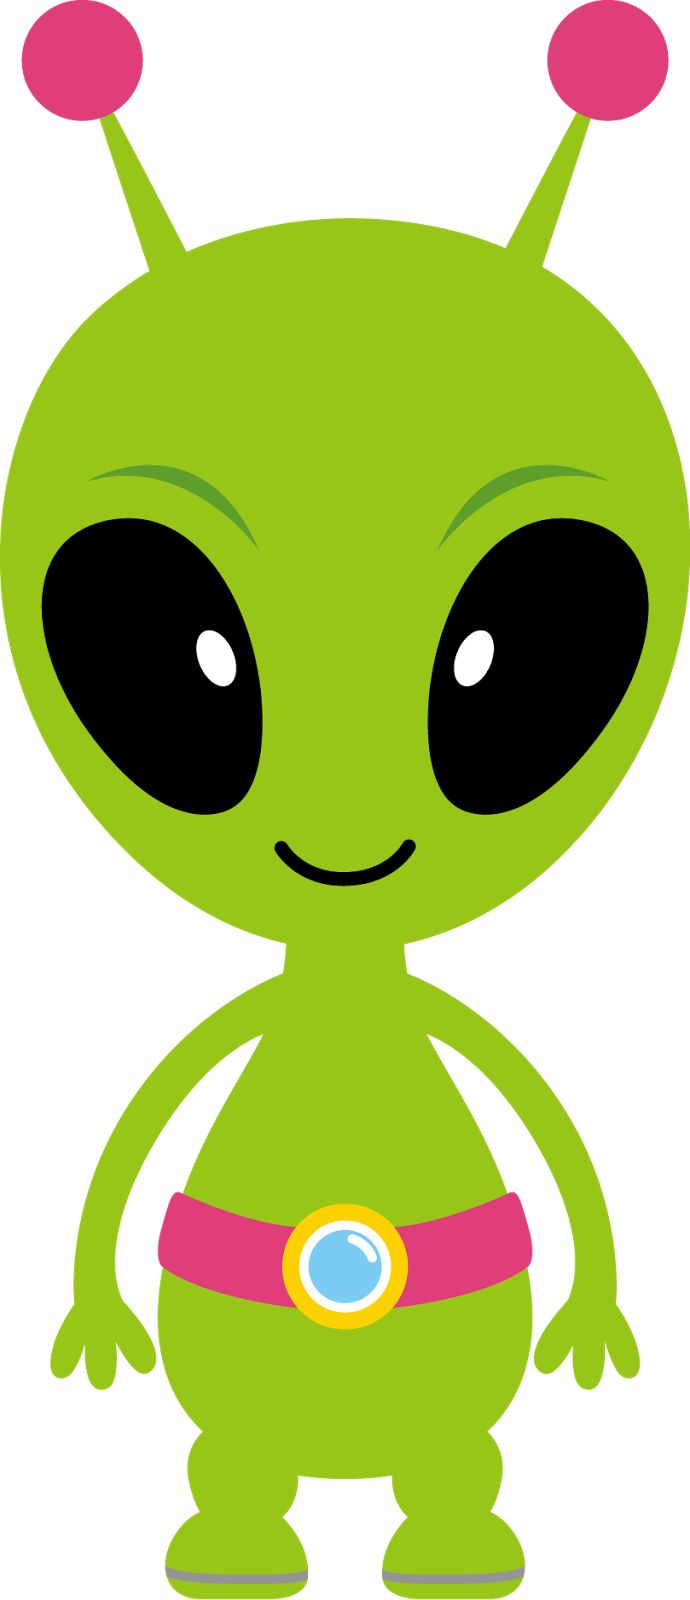 Green alien spaceship clipart